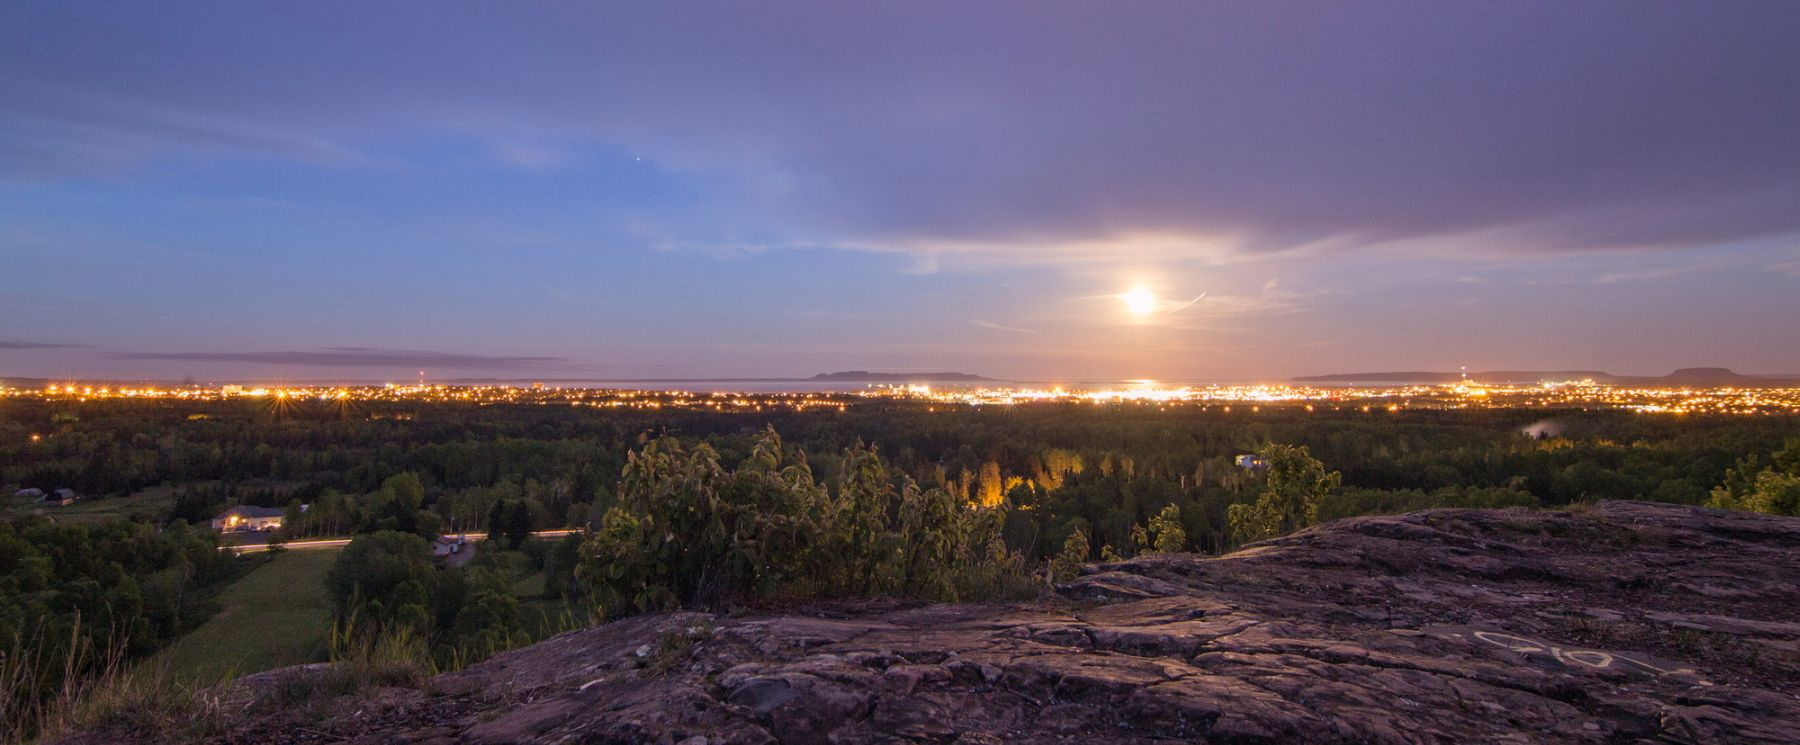 City of Thunder Bay Scenic View